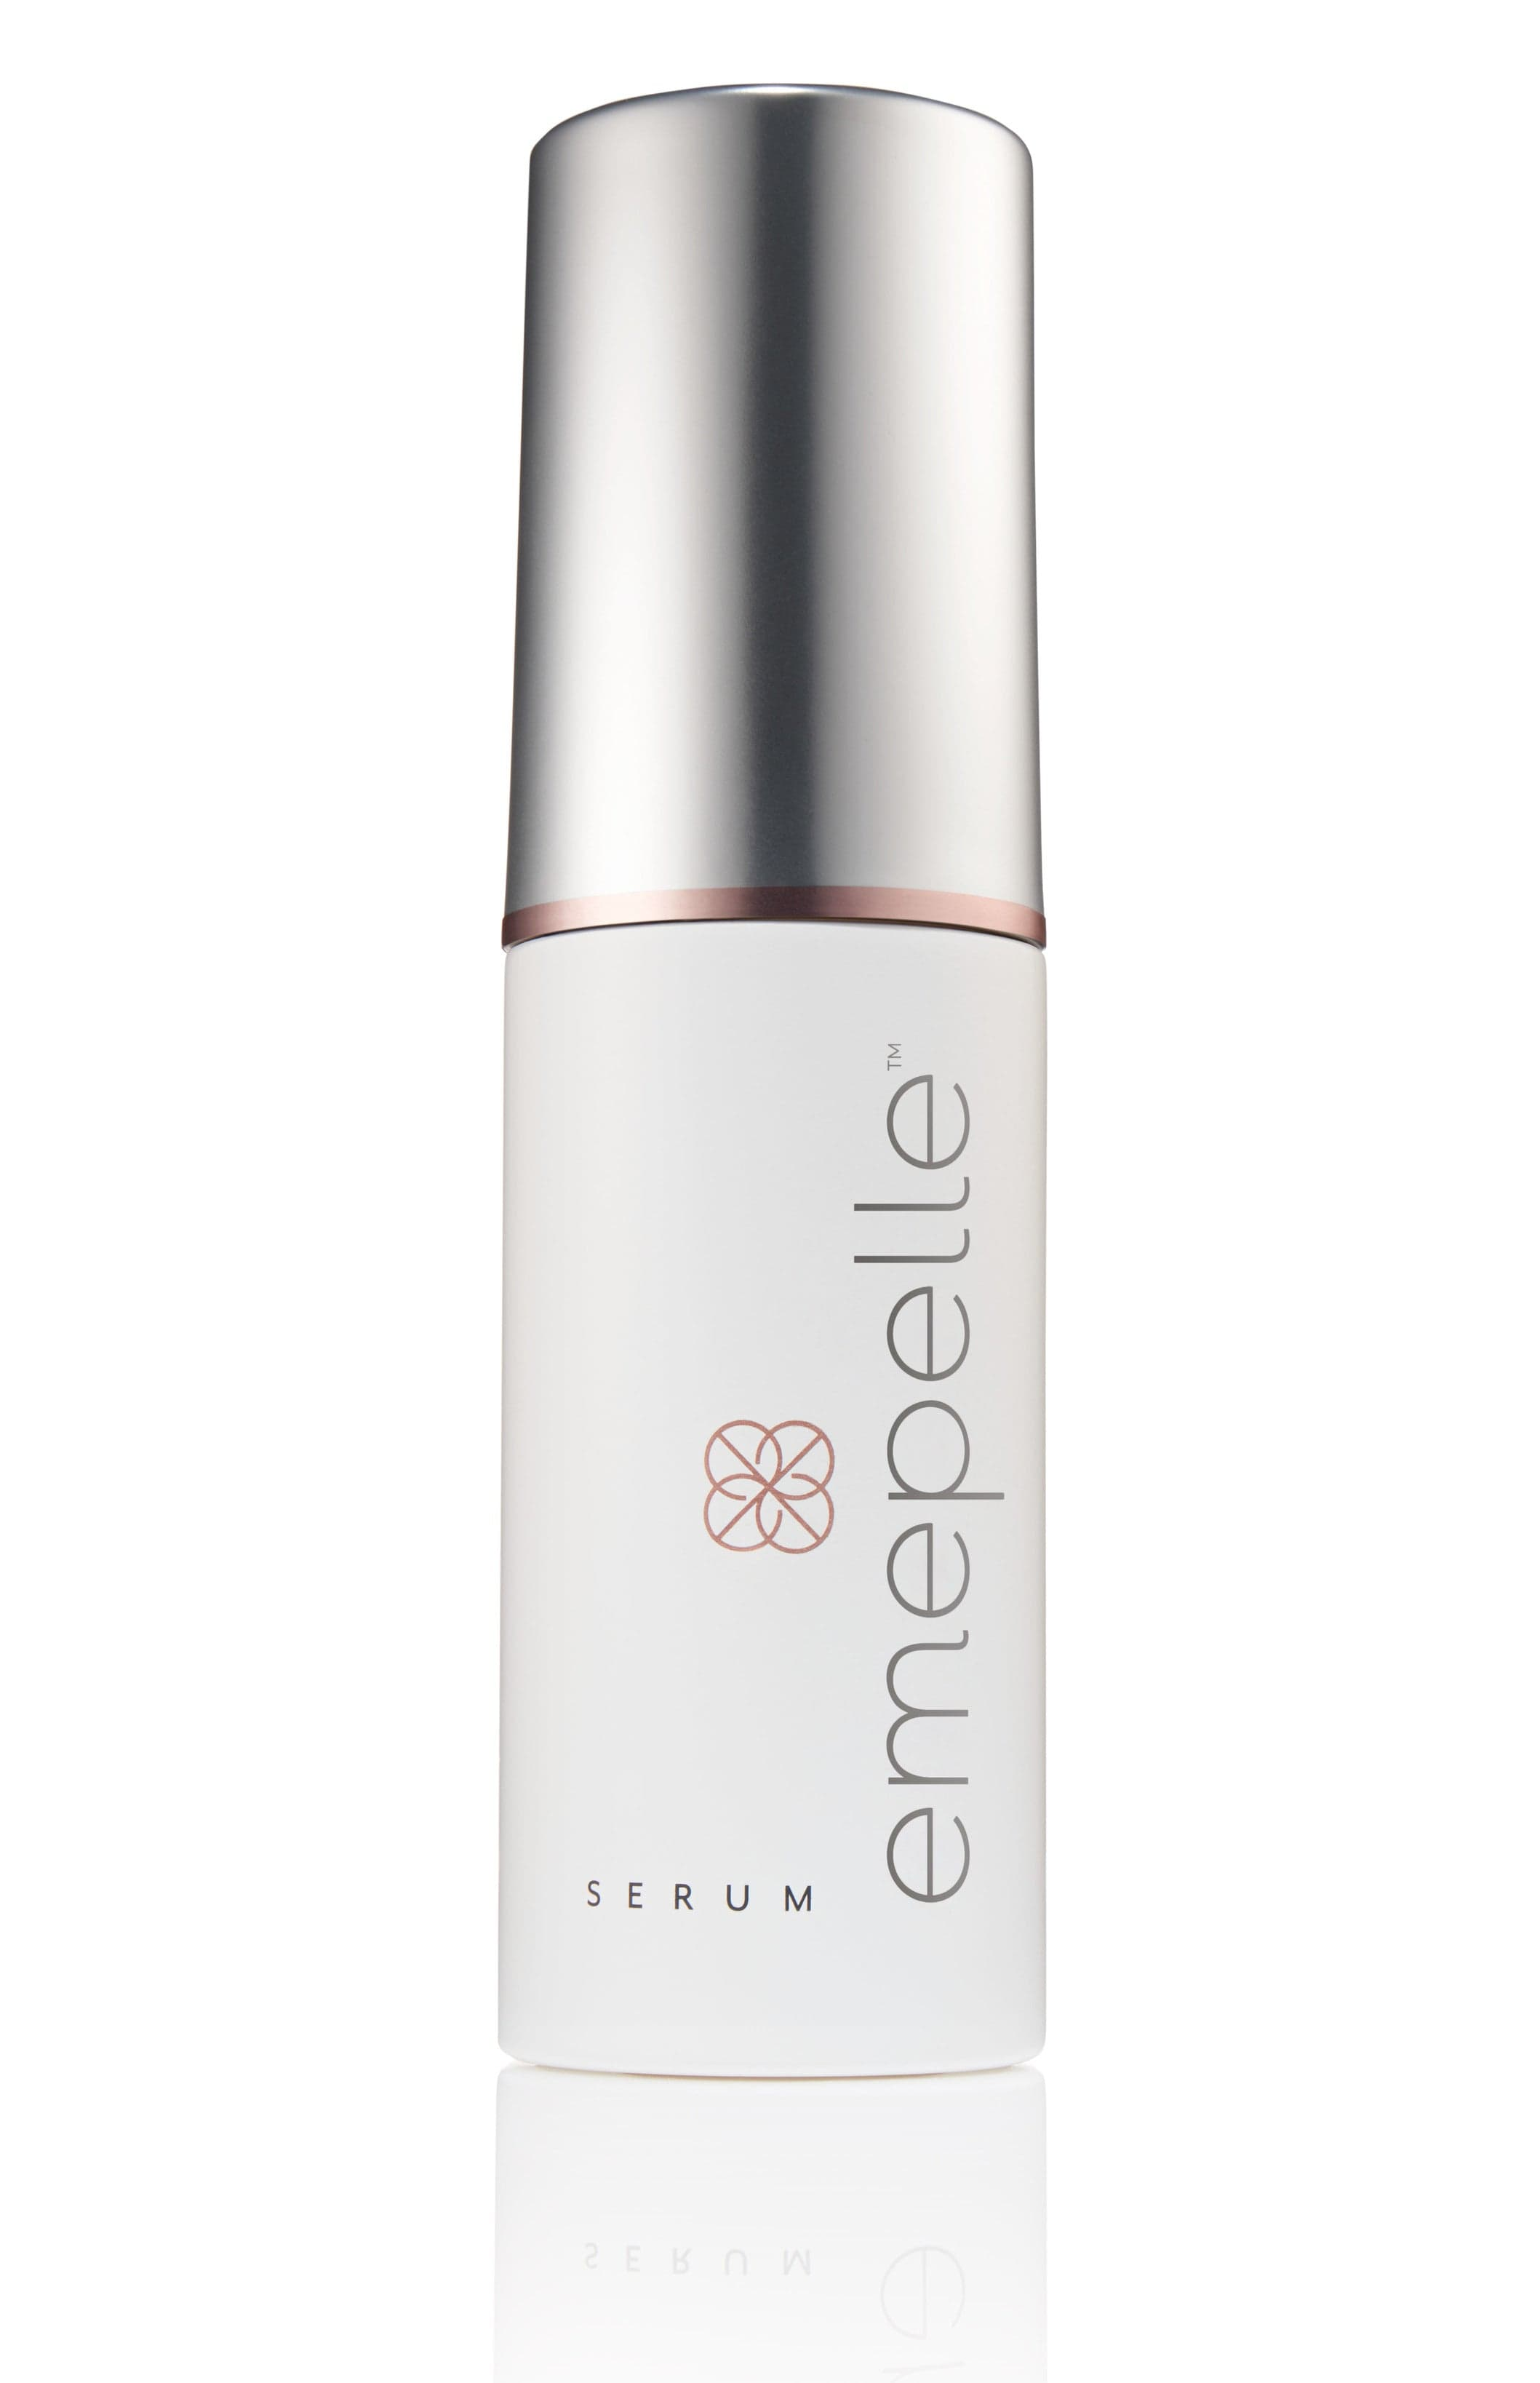 image descriptionEmepelle- Serum